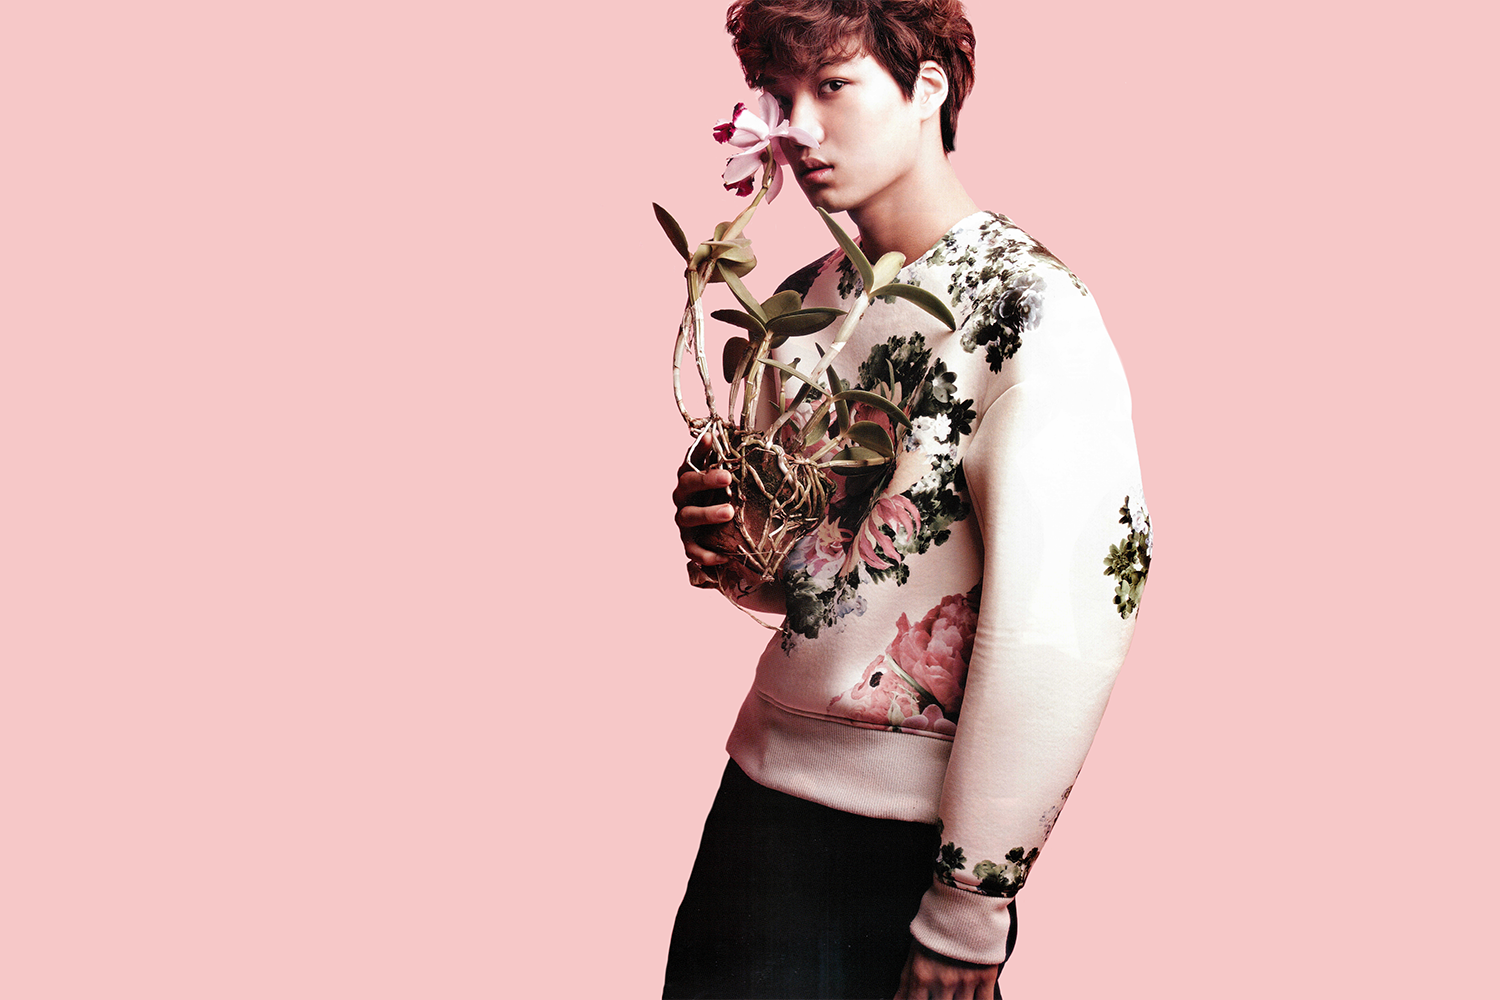 Latest-Kpop-EXO-K-Kai-Over-Flowers-HD-HD-Quality-Also-downloa-all-of-EXO-EXO-wallpaper-wp5807405